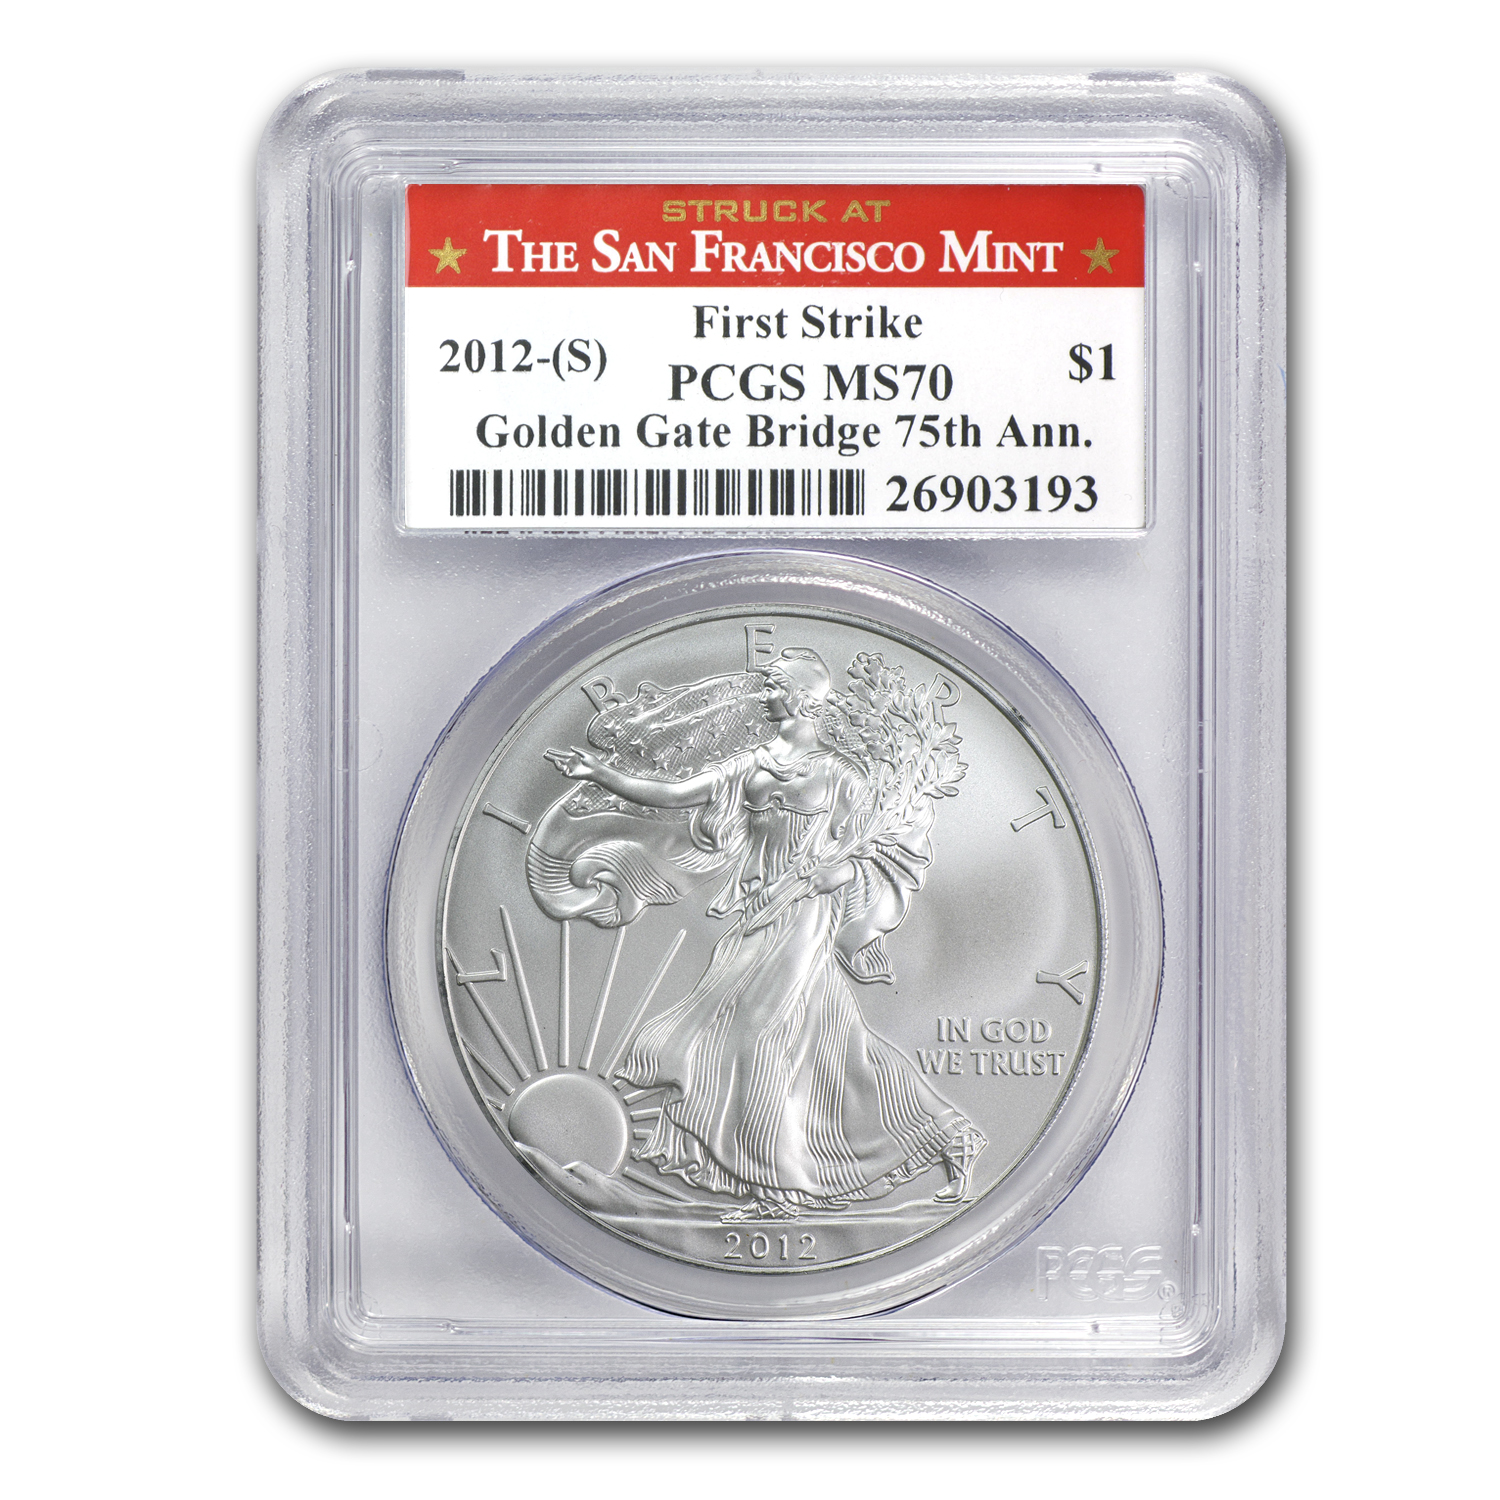 2012 (S) Silver Eagle MS-70 PCGS (FS, 75th Anniv, Golden Gate)